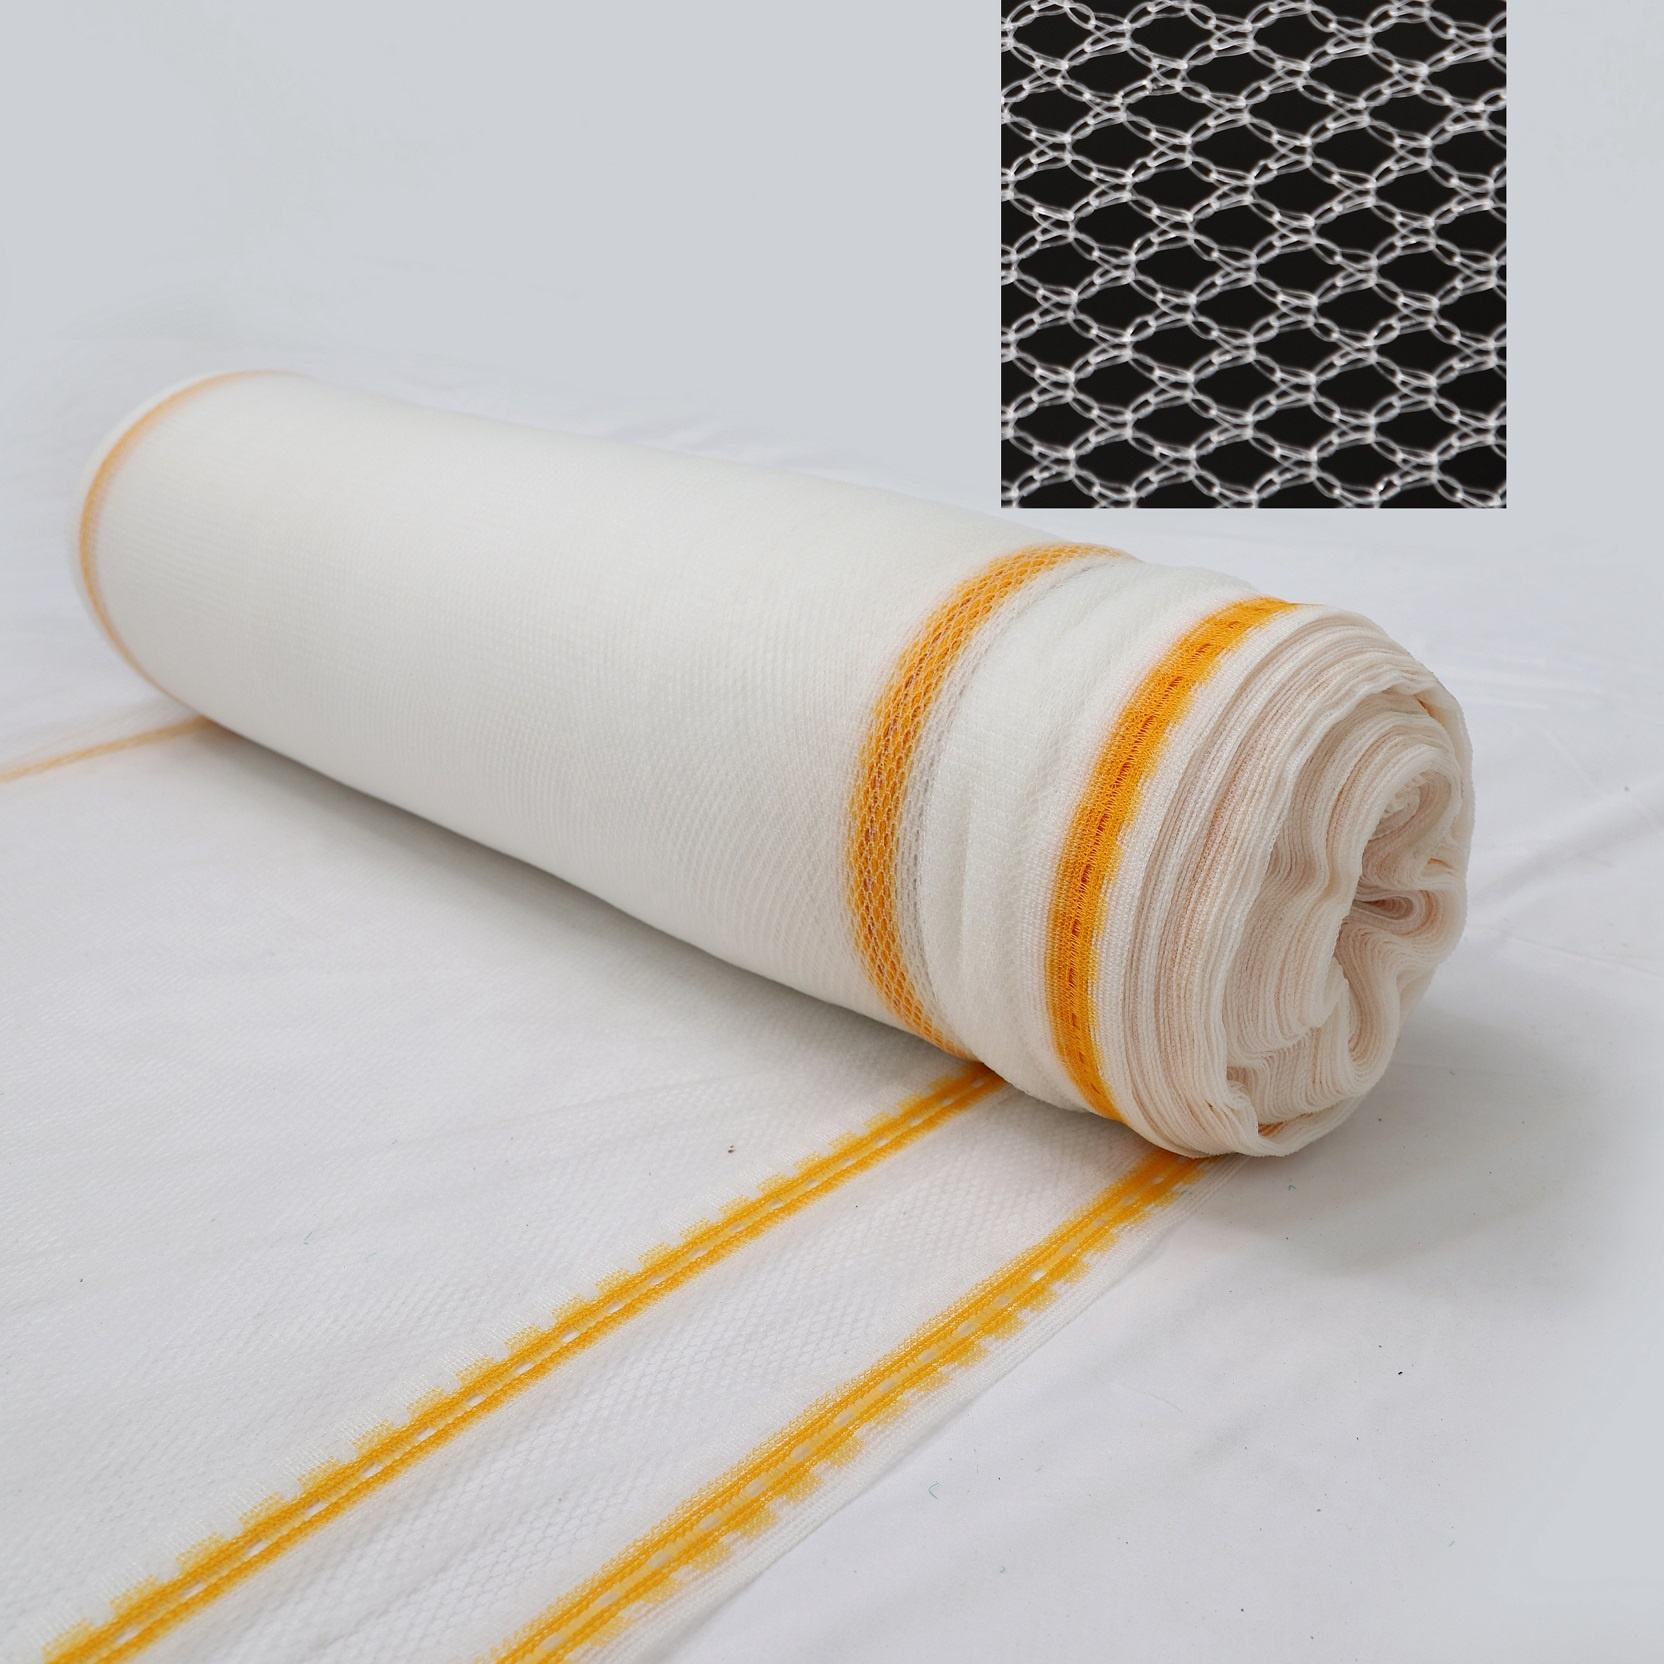 New knitting method yellow anti hail net mesh diamond